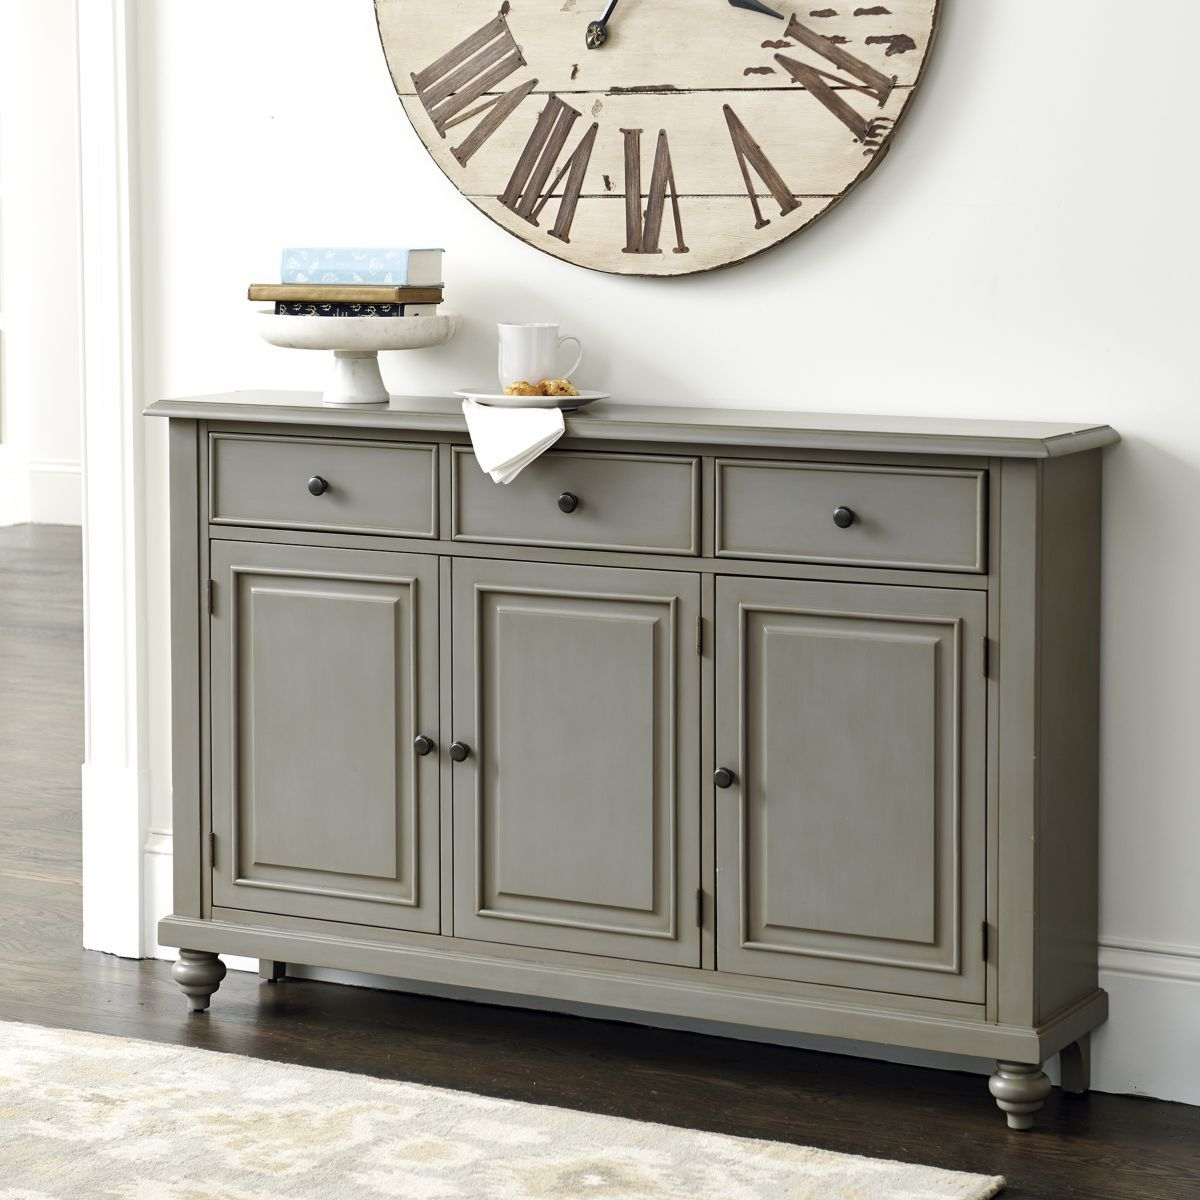 Martin 3 Door Console Table | Family Room Wall In 2019 Regarding Current Giulia 3 Drawer Credenzas (View 12 of 20)